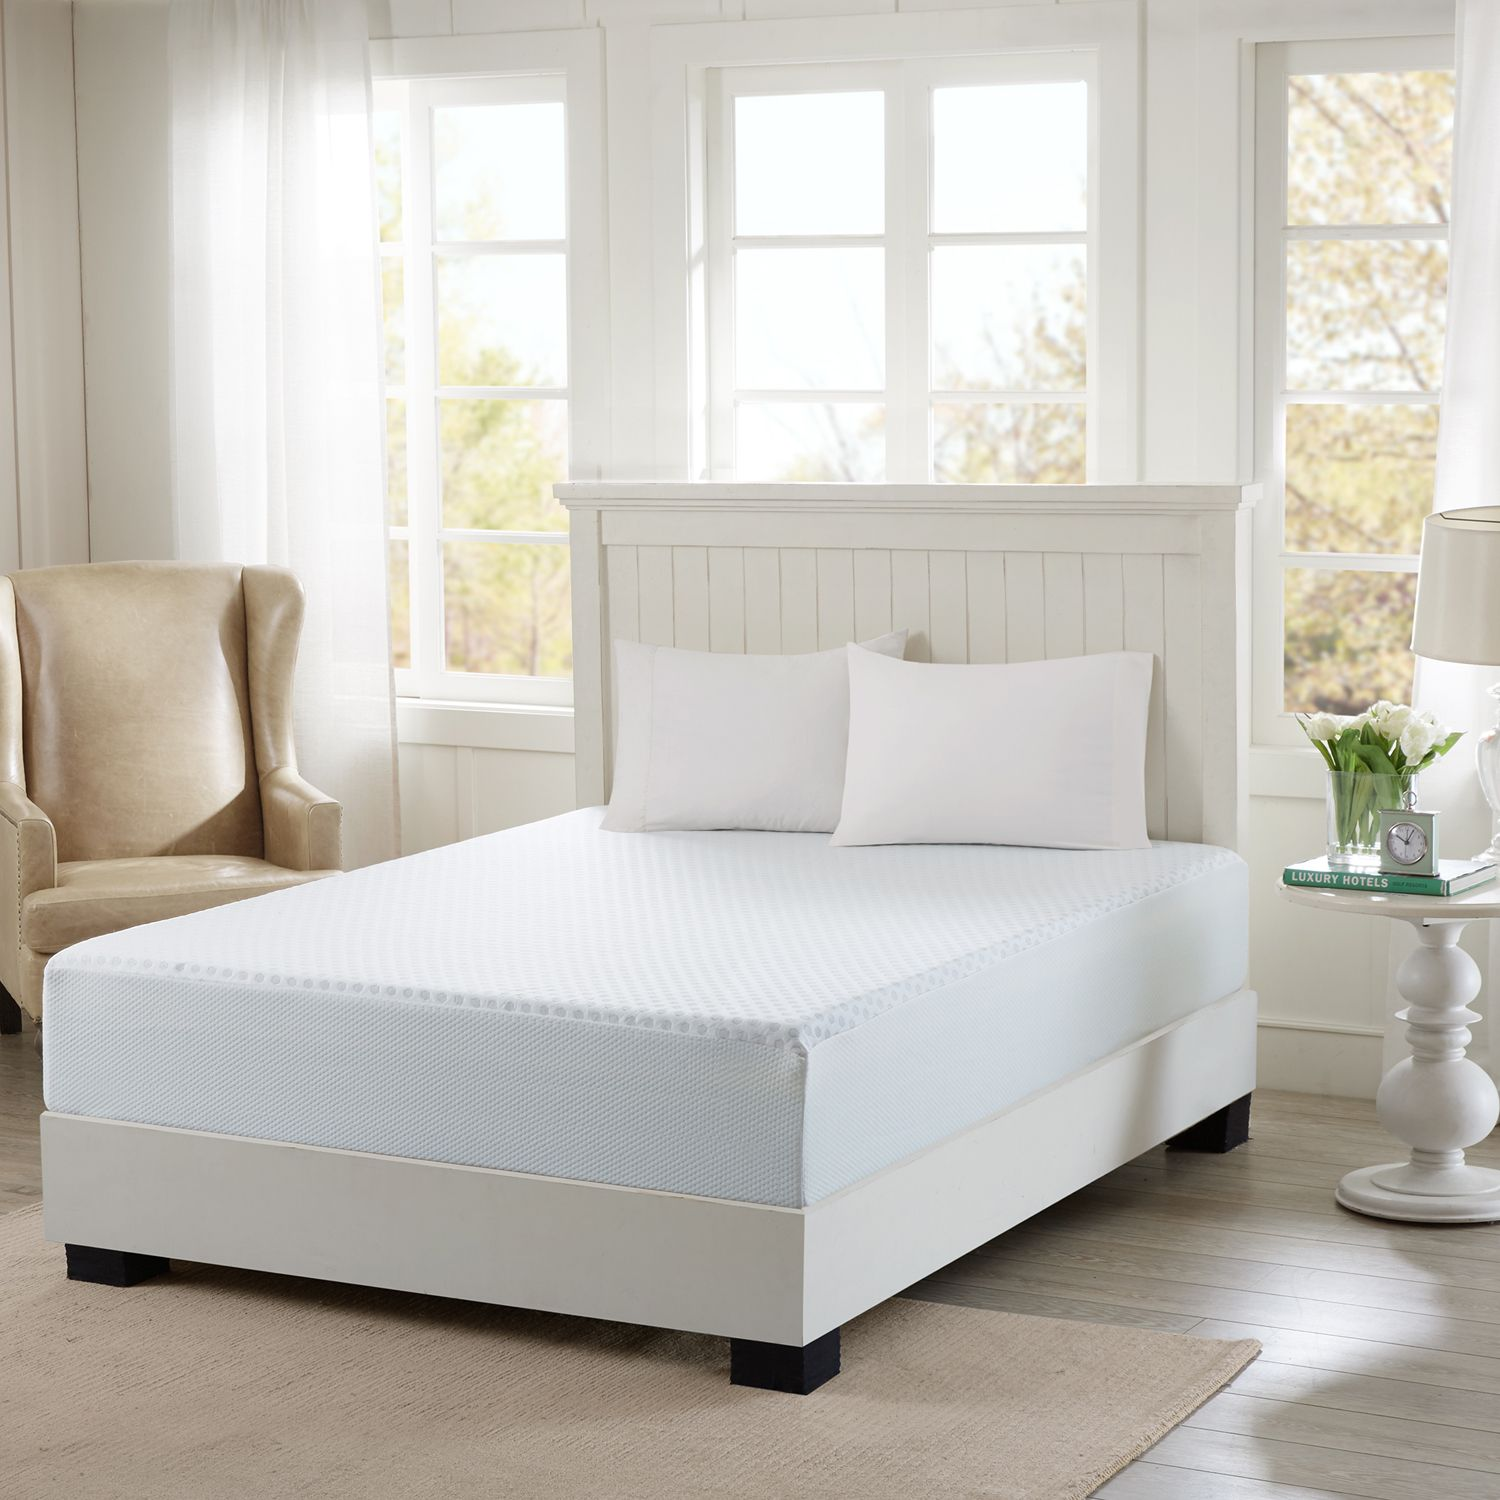 Perfect Flexapedic by Sleep Philosophy Inch Gel Memory Foam Mattress with Cooling Cover